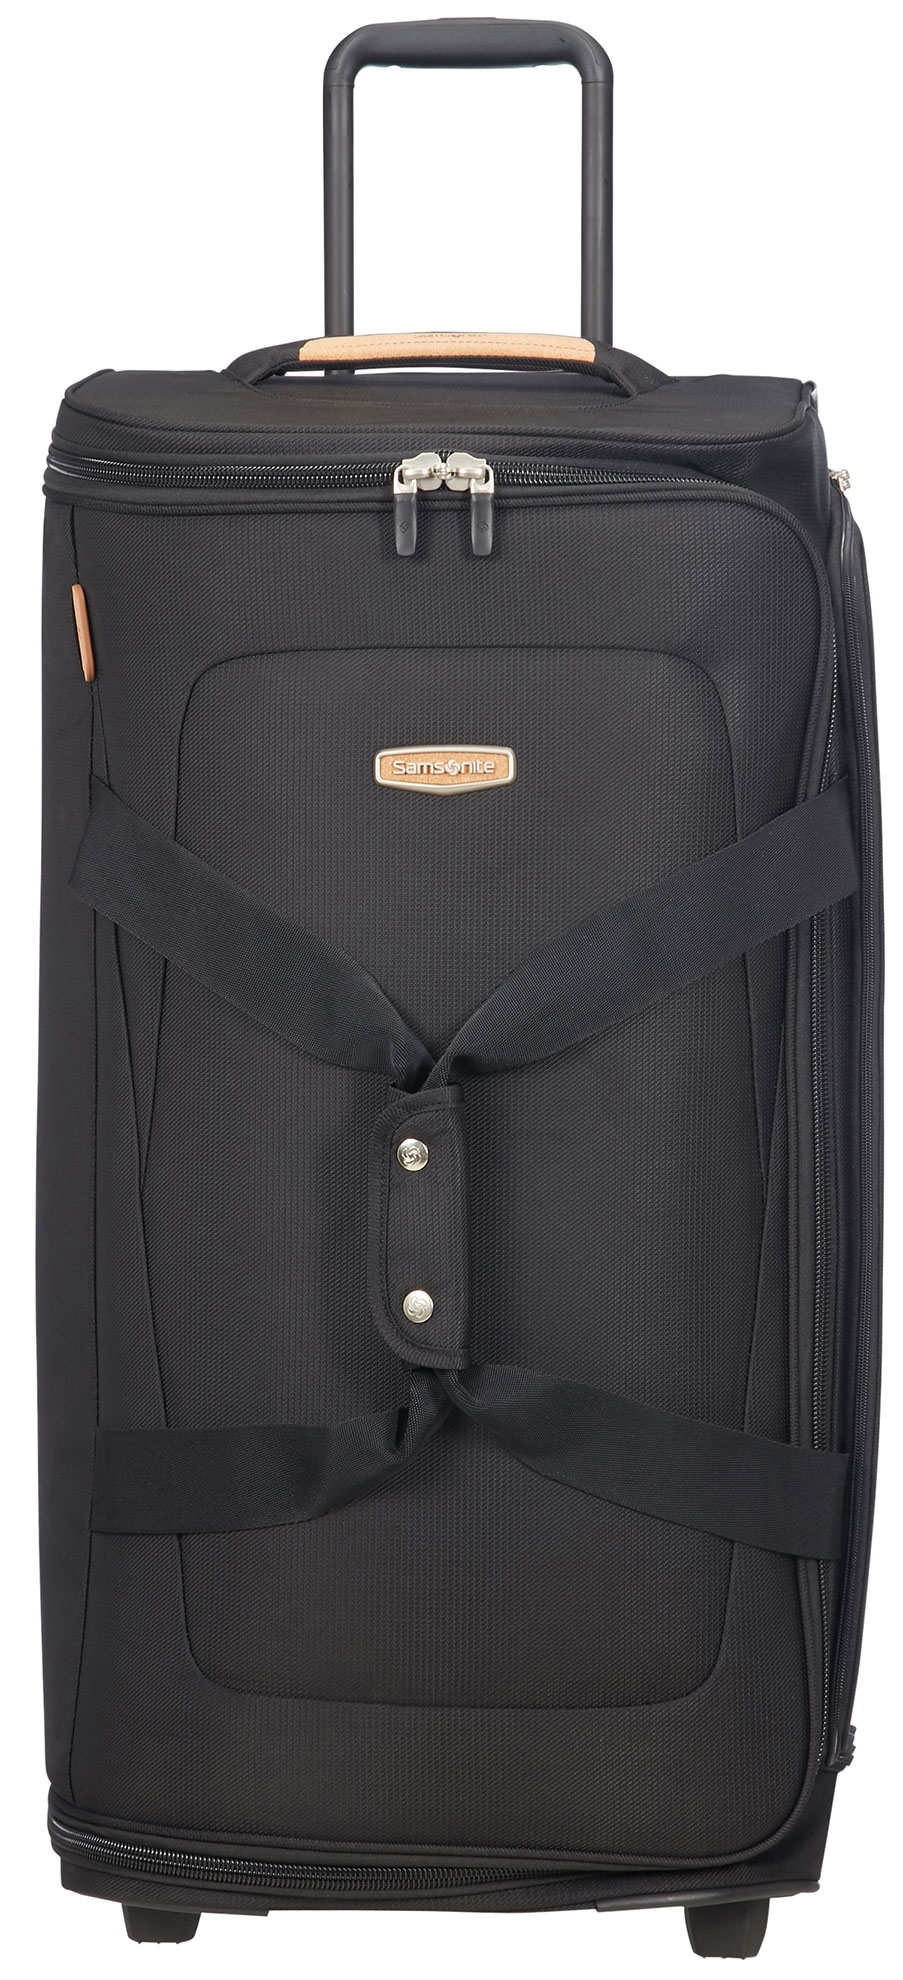 SAMSONITE SPARK SNG ECO Grand sac avec trolley